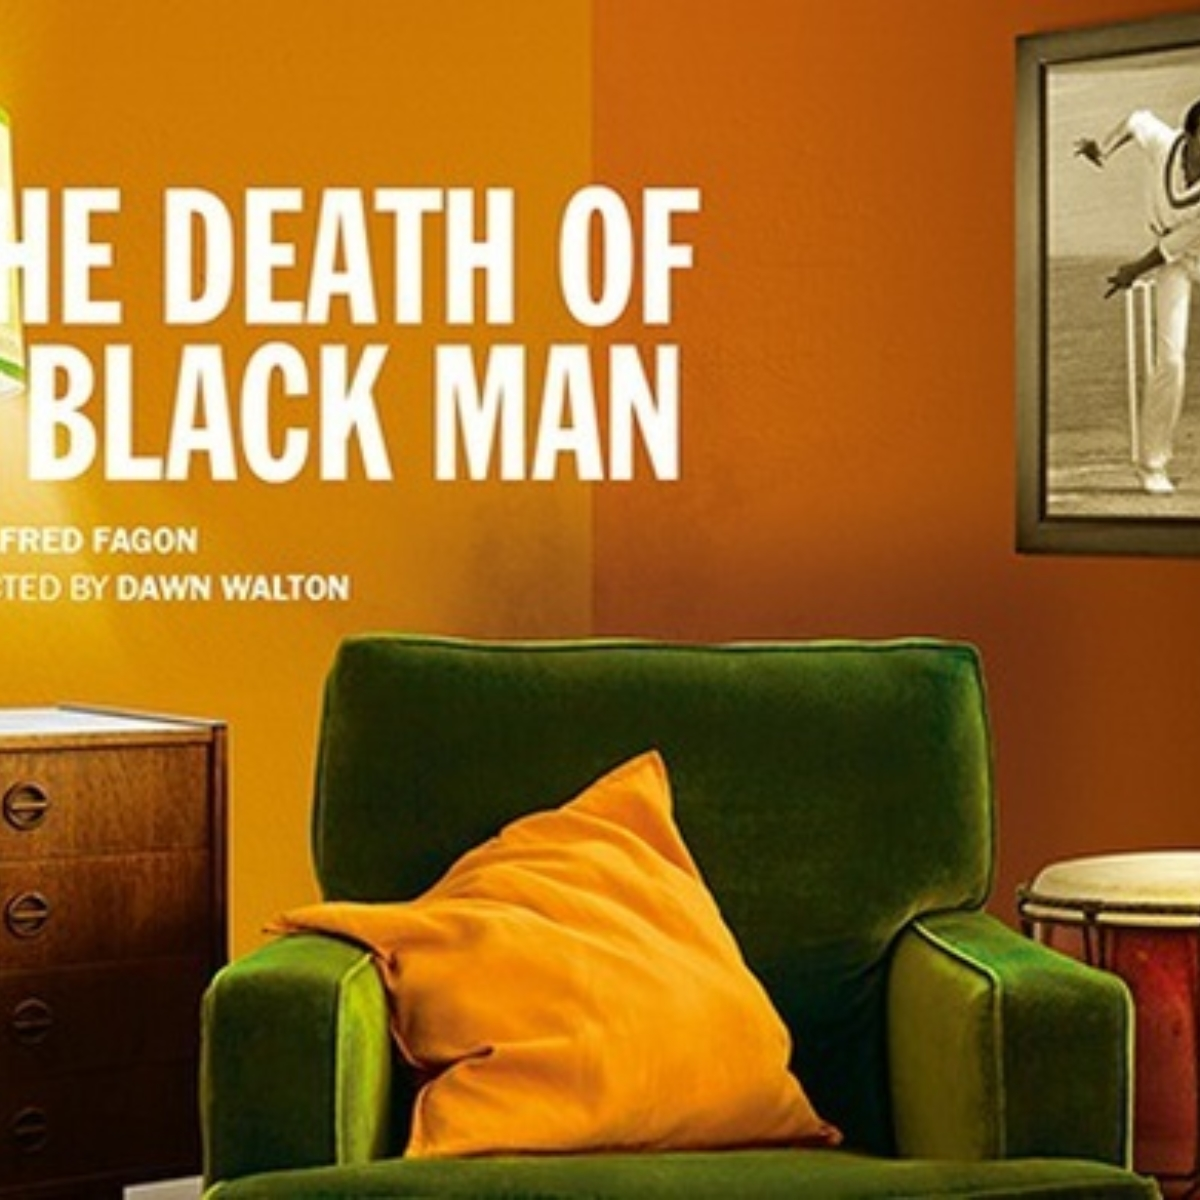 The Death of a Black Man Images